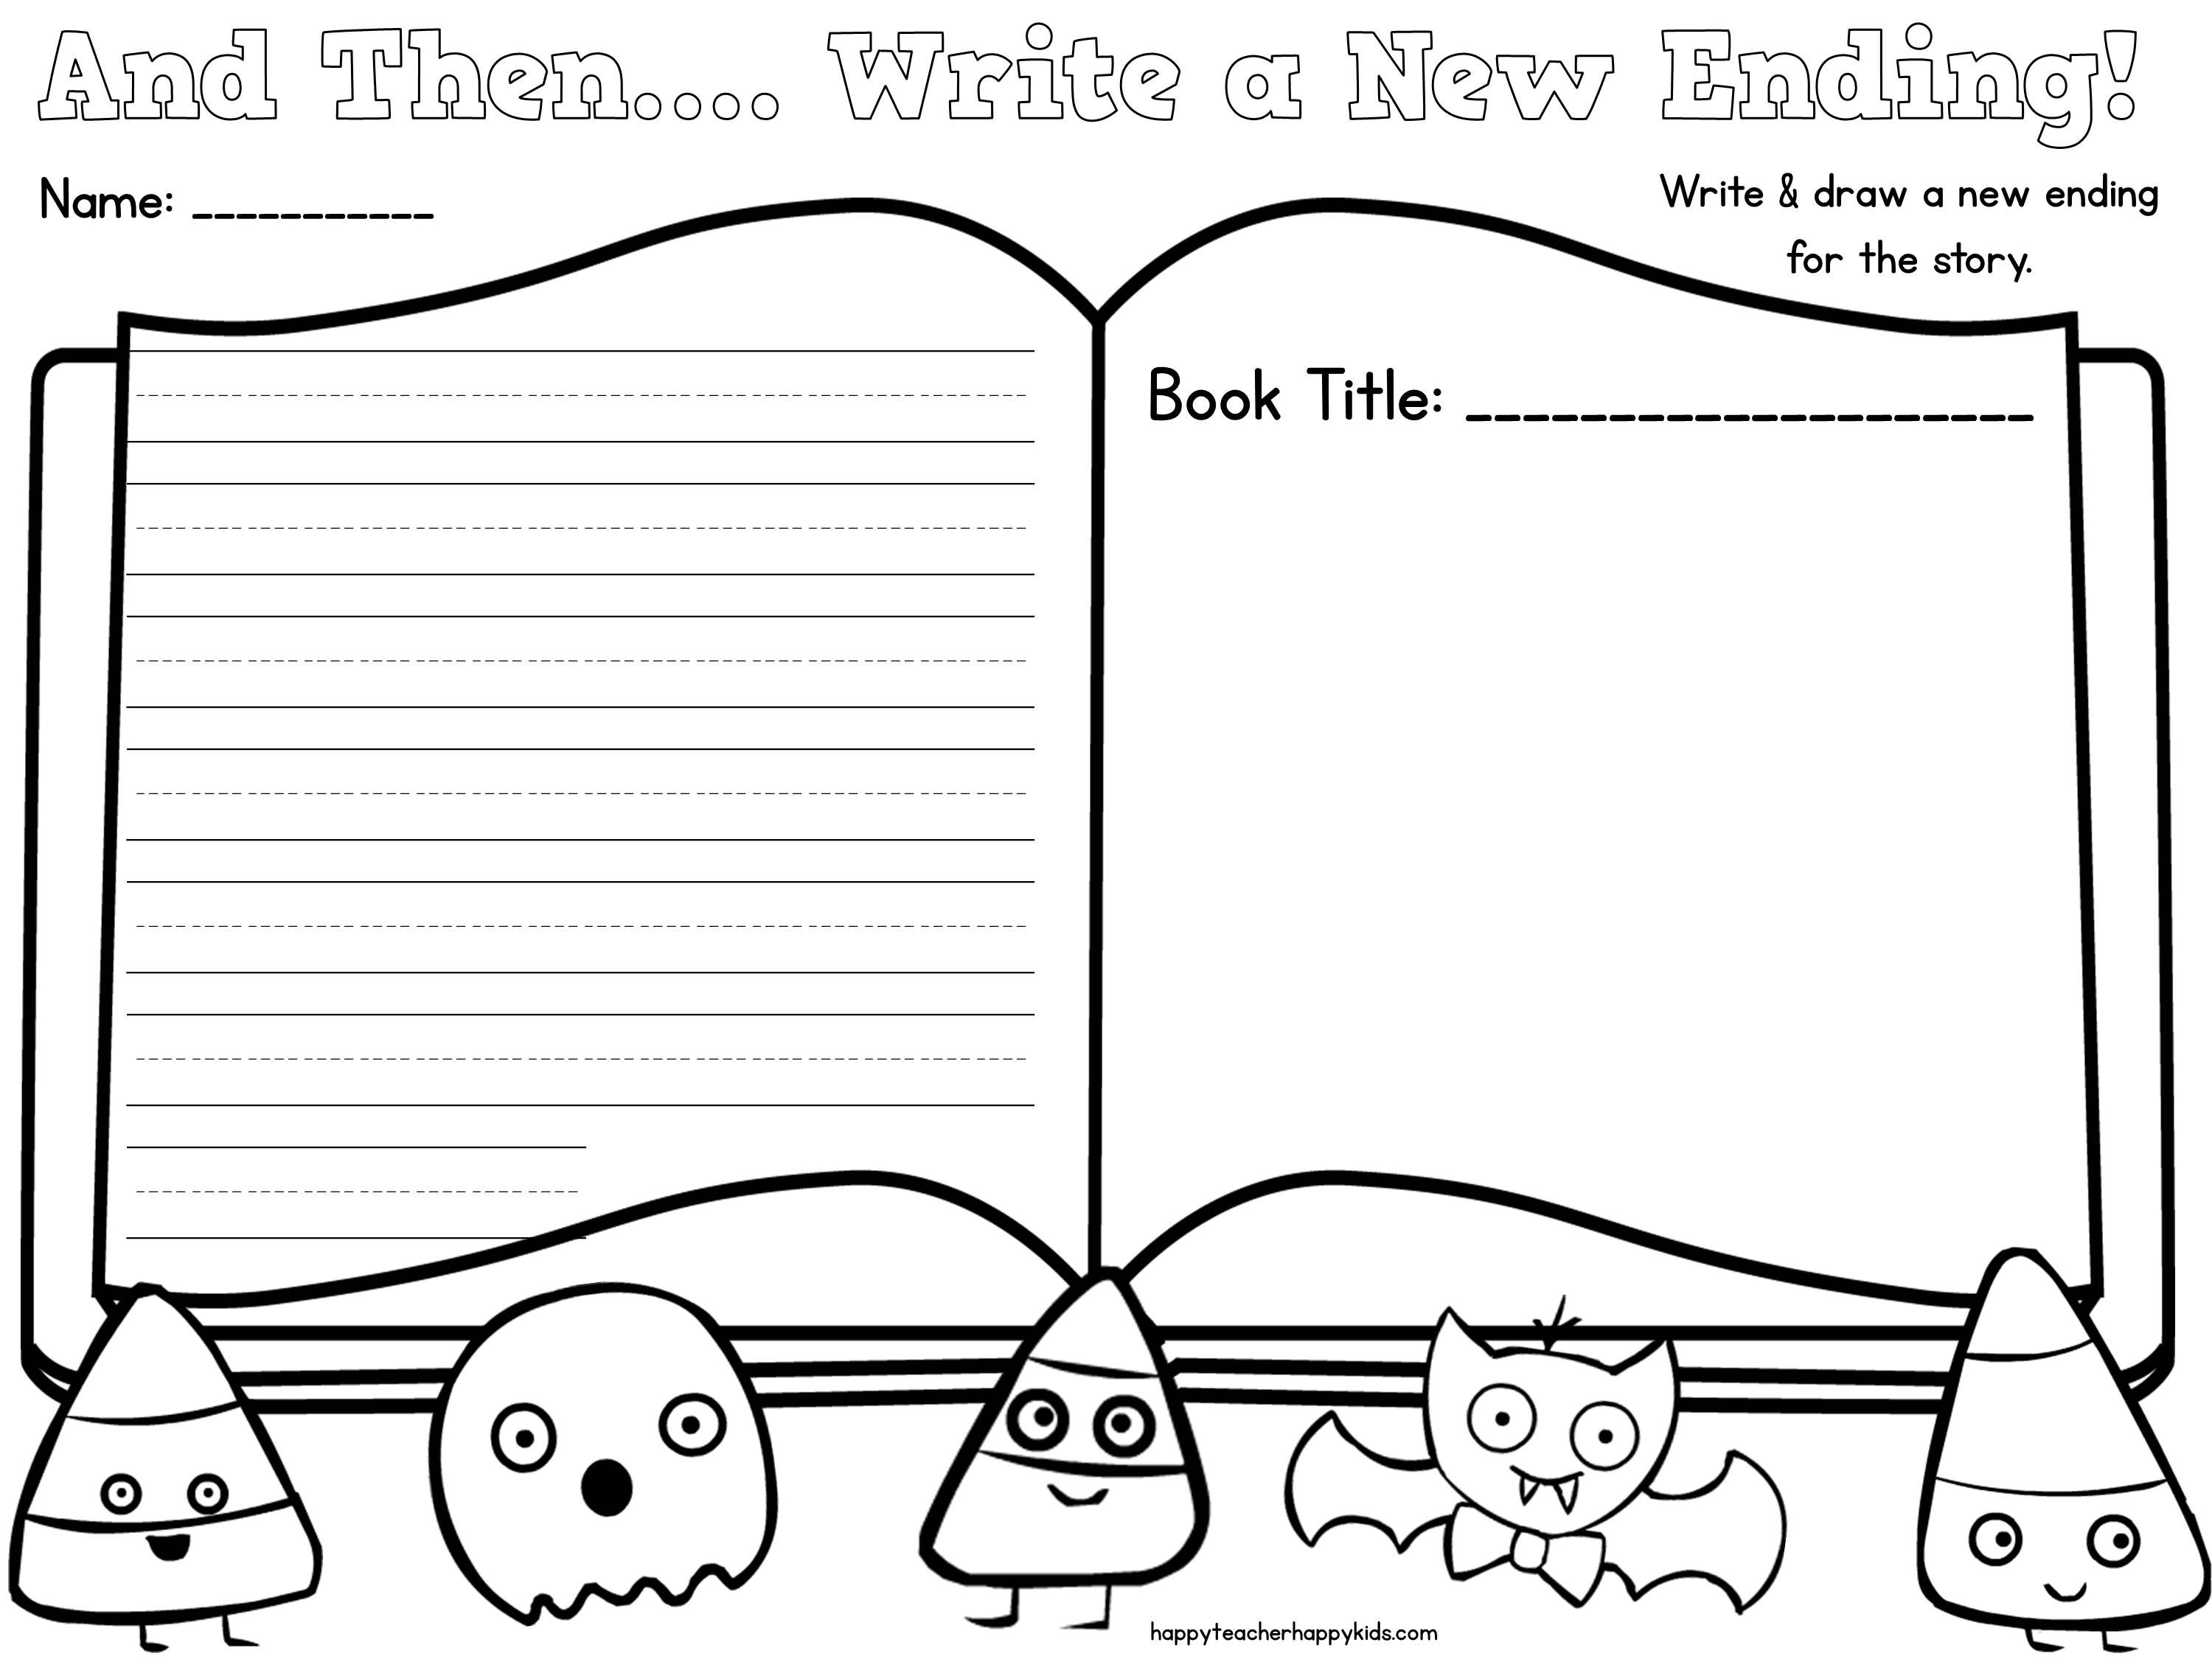 Write A New Ending For A Spooky Story Reading